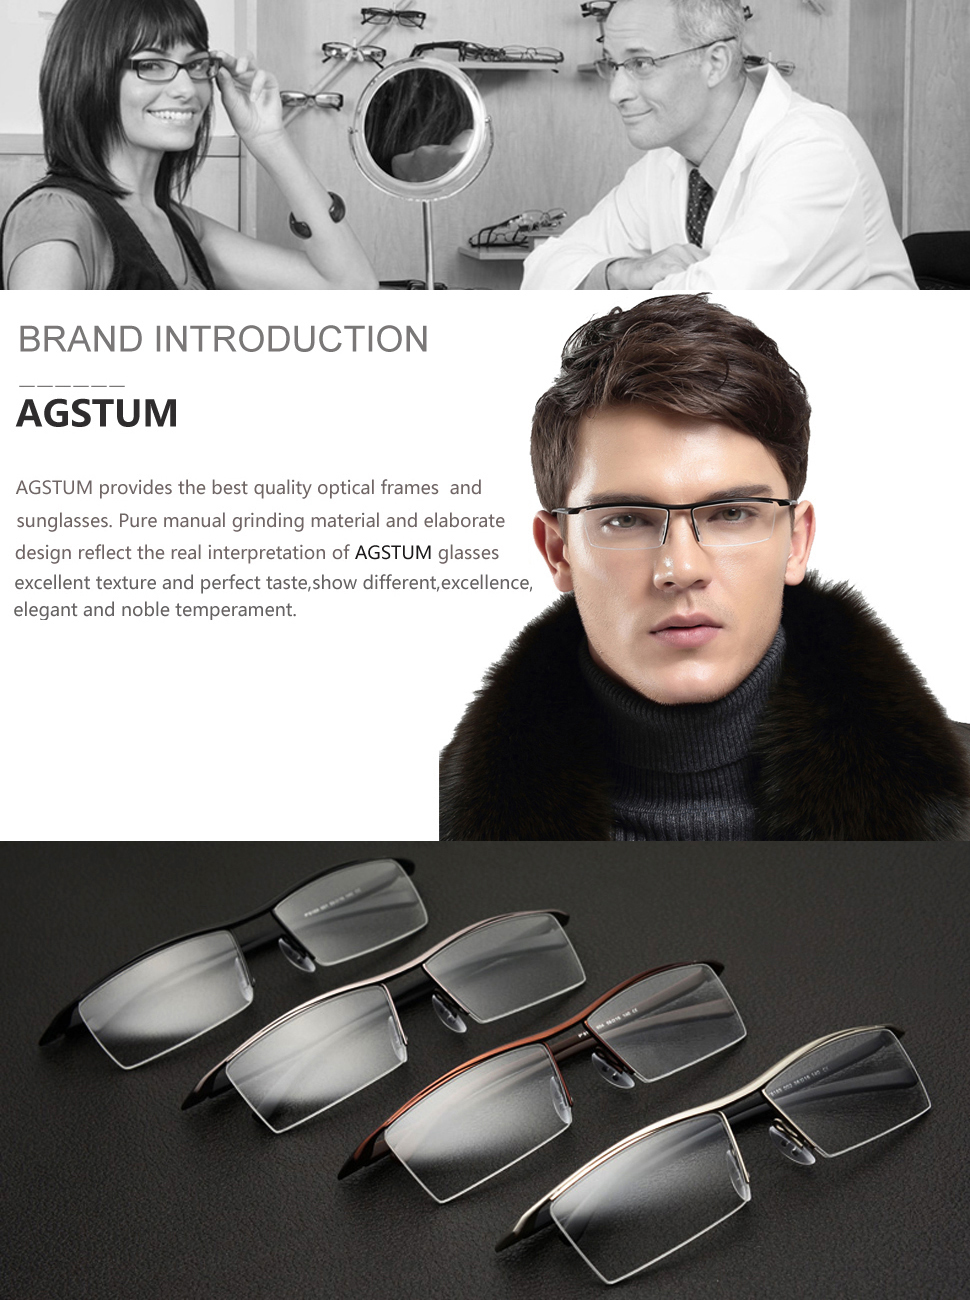 7d49436b8b FEATURES AND USES. ✓Great fashion frame design for Business lifestyles.  ✓Durable optical glasses.